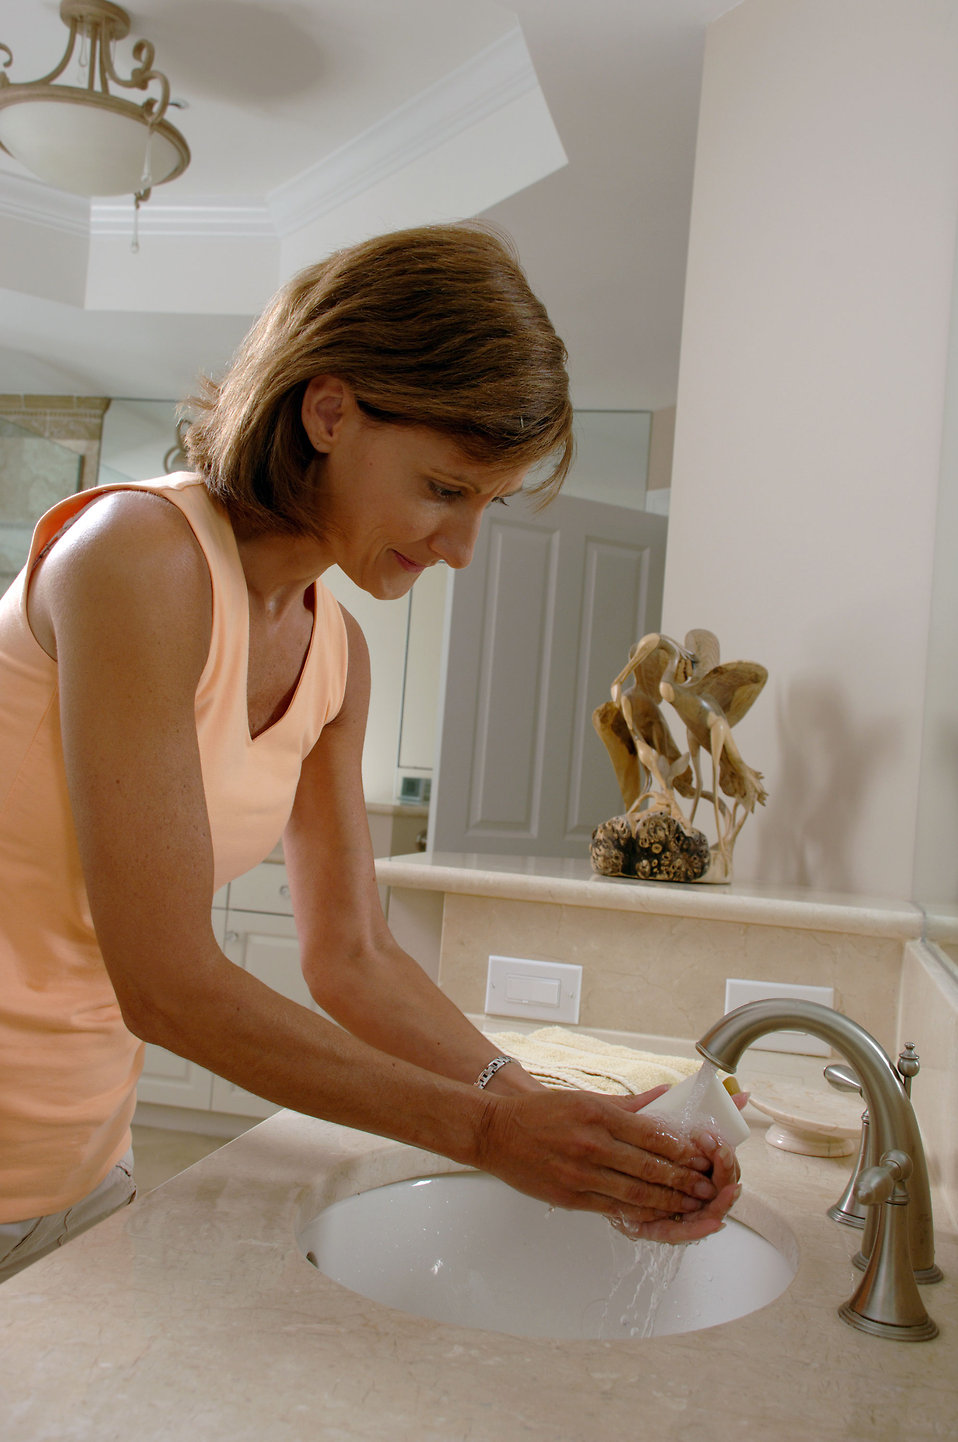 A woman washing her hands : Free Stock Photo